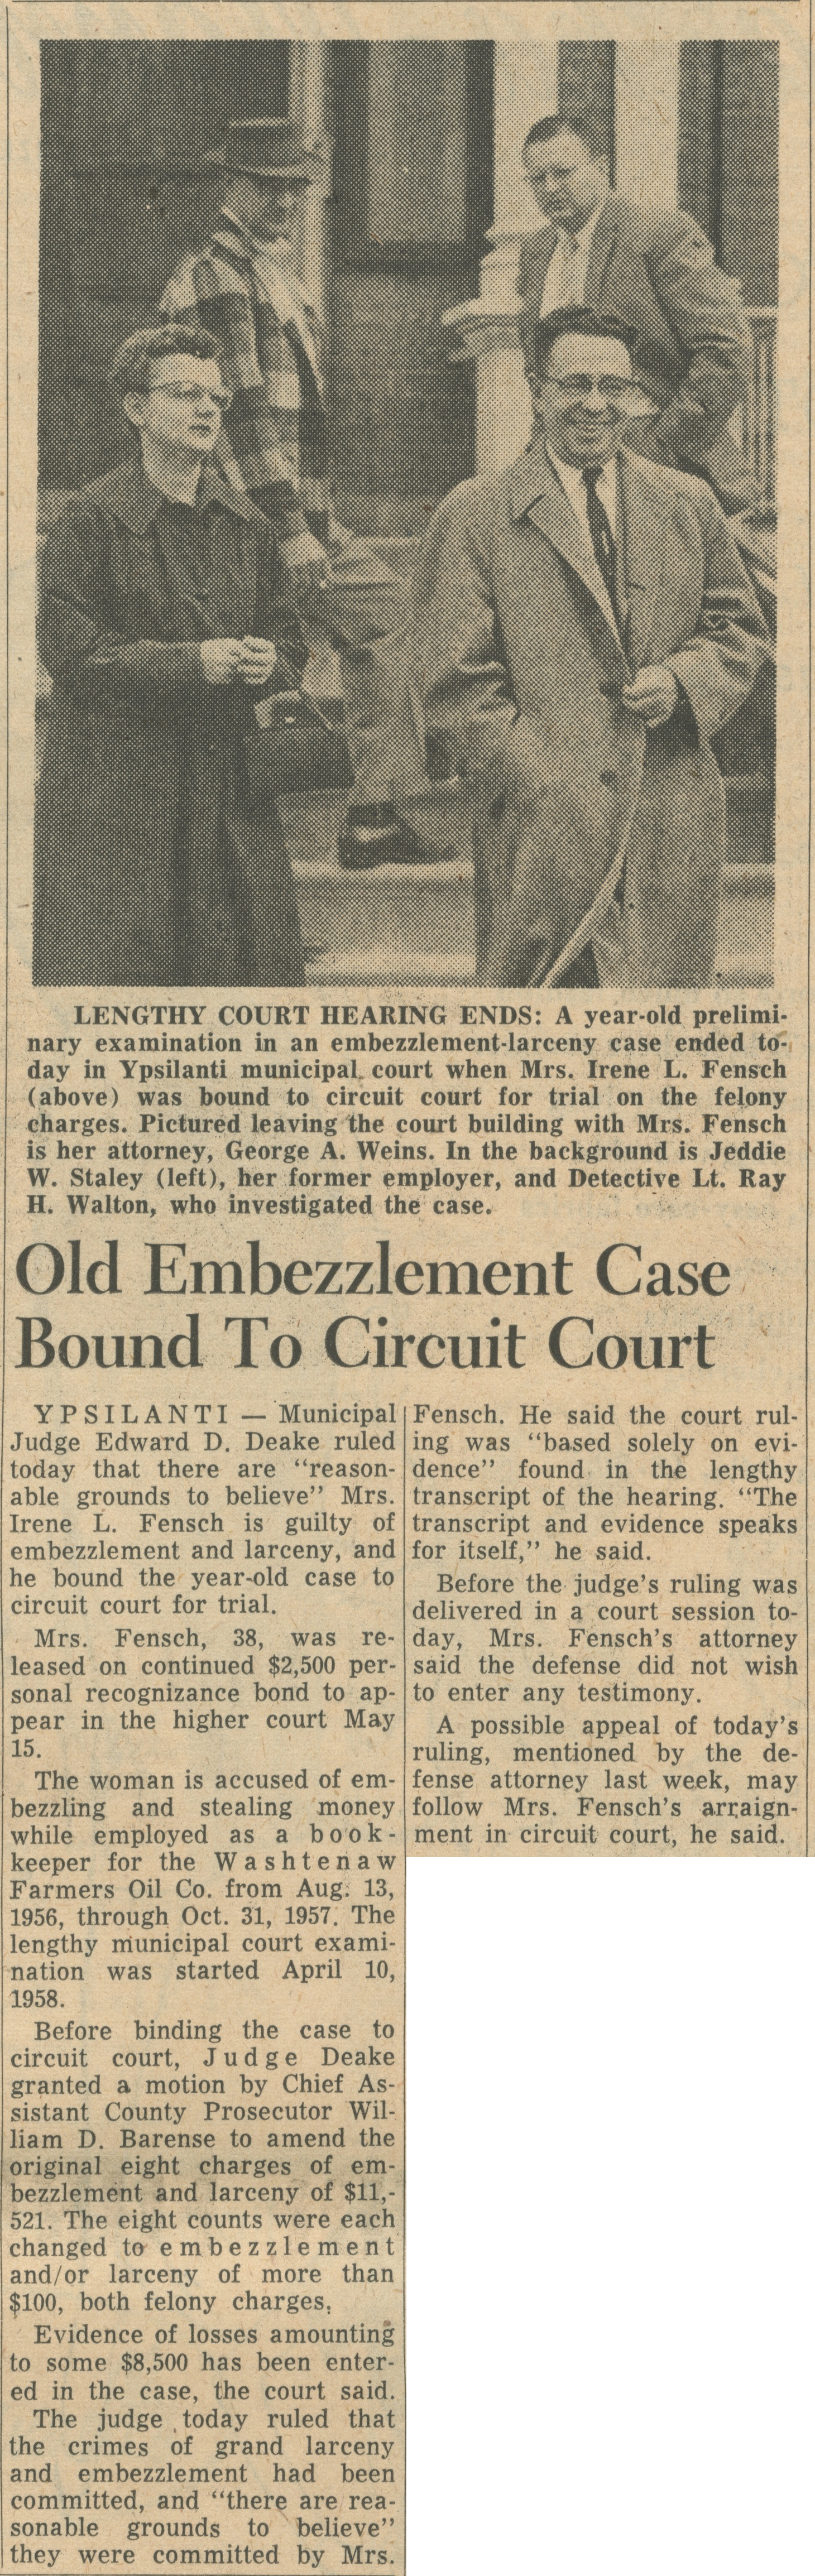 Old Embezzlement Case Bound To Circuit Court image